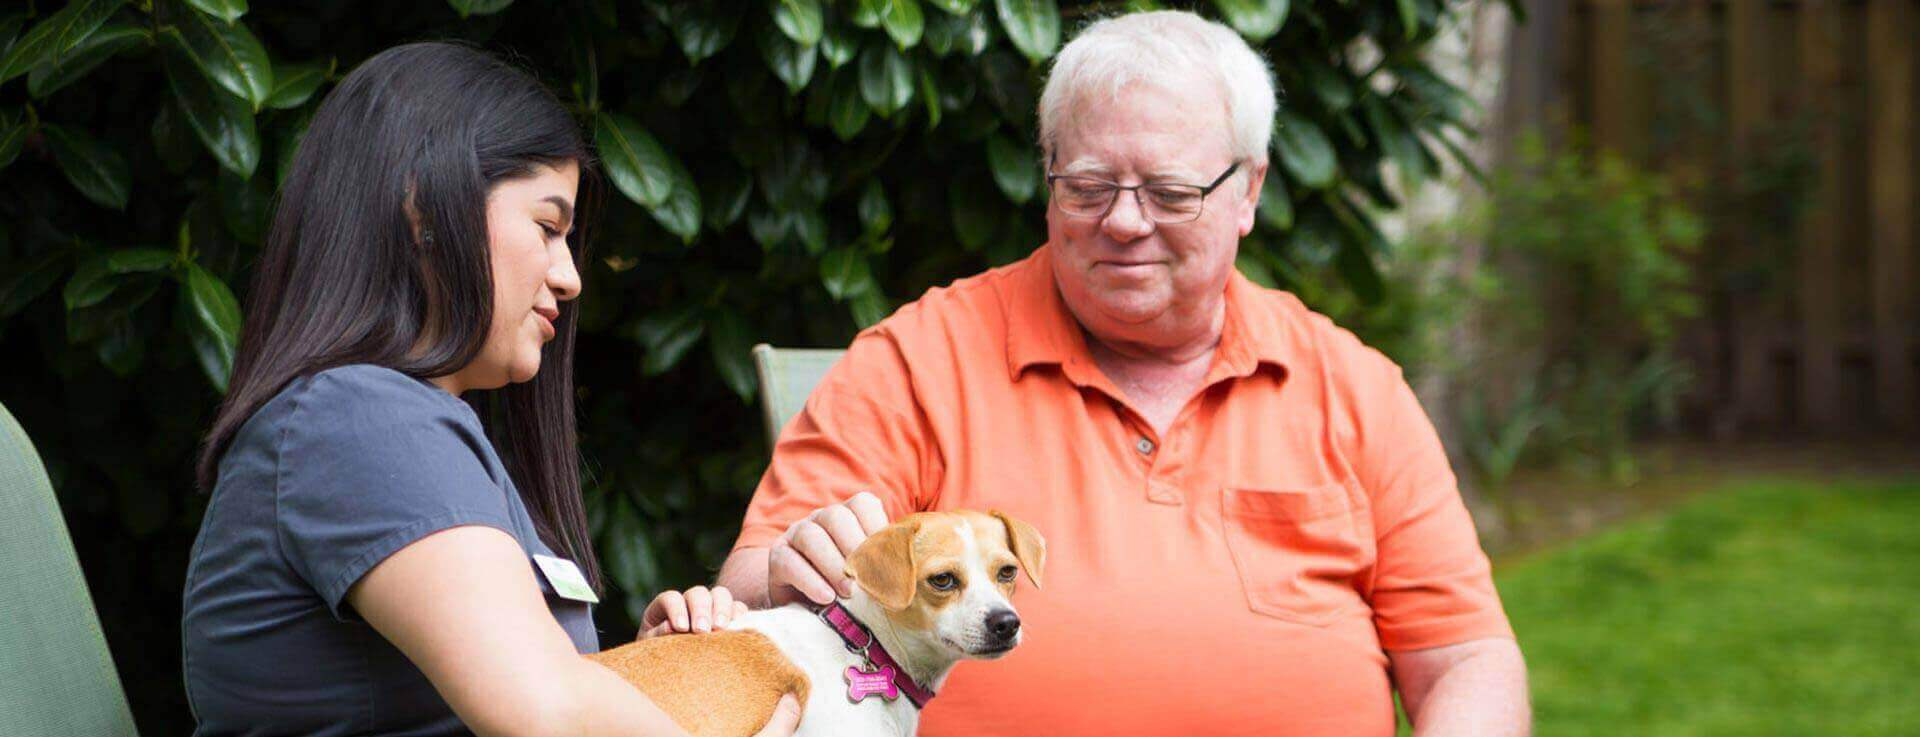 Caregiver and man sitting outside petting puppy